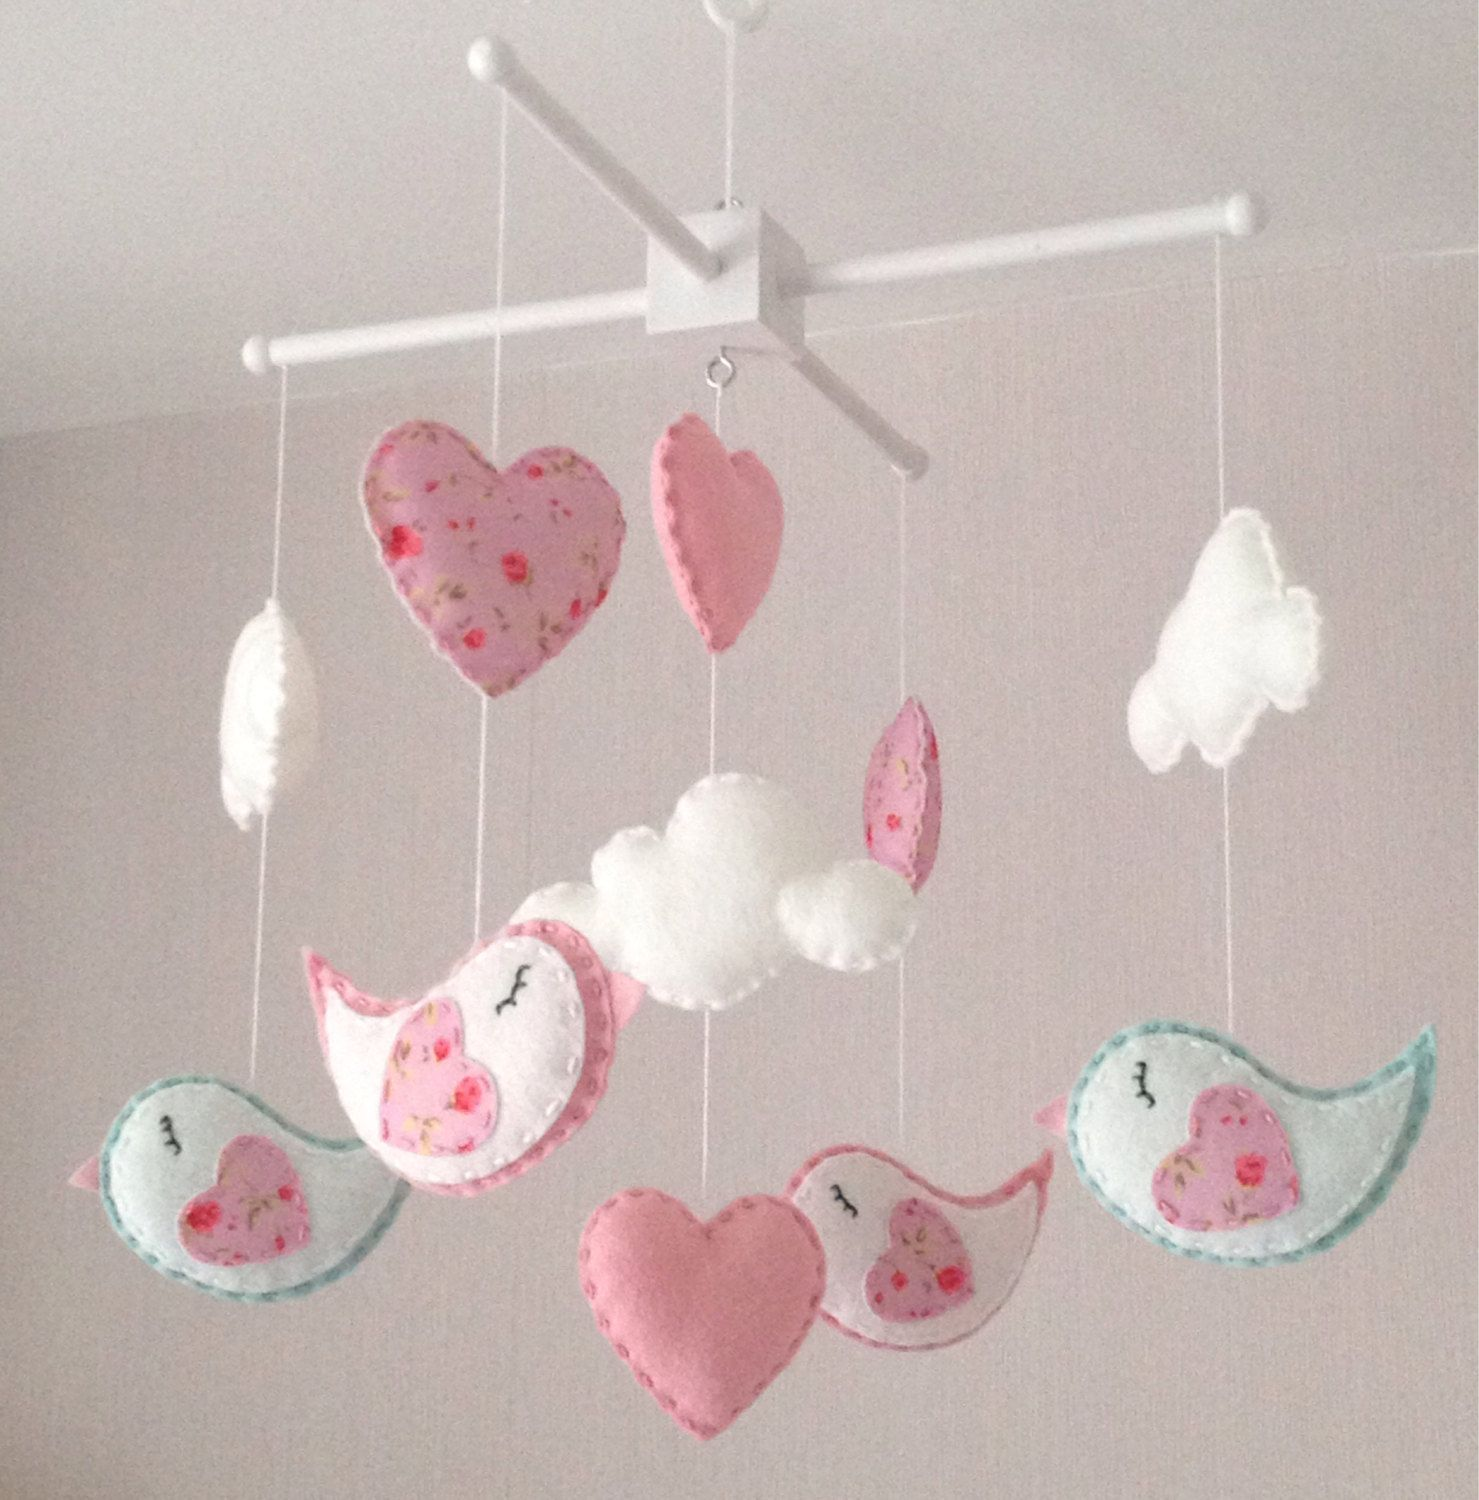 baby mobile  cot mobile  bird mobile  cloud mobile  baby girl  - baby mobile  cot mobile  bird mobile  cloud mobile  baby girl mobile nursery decor  pink nursery  pink baby mobile